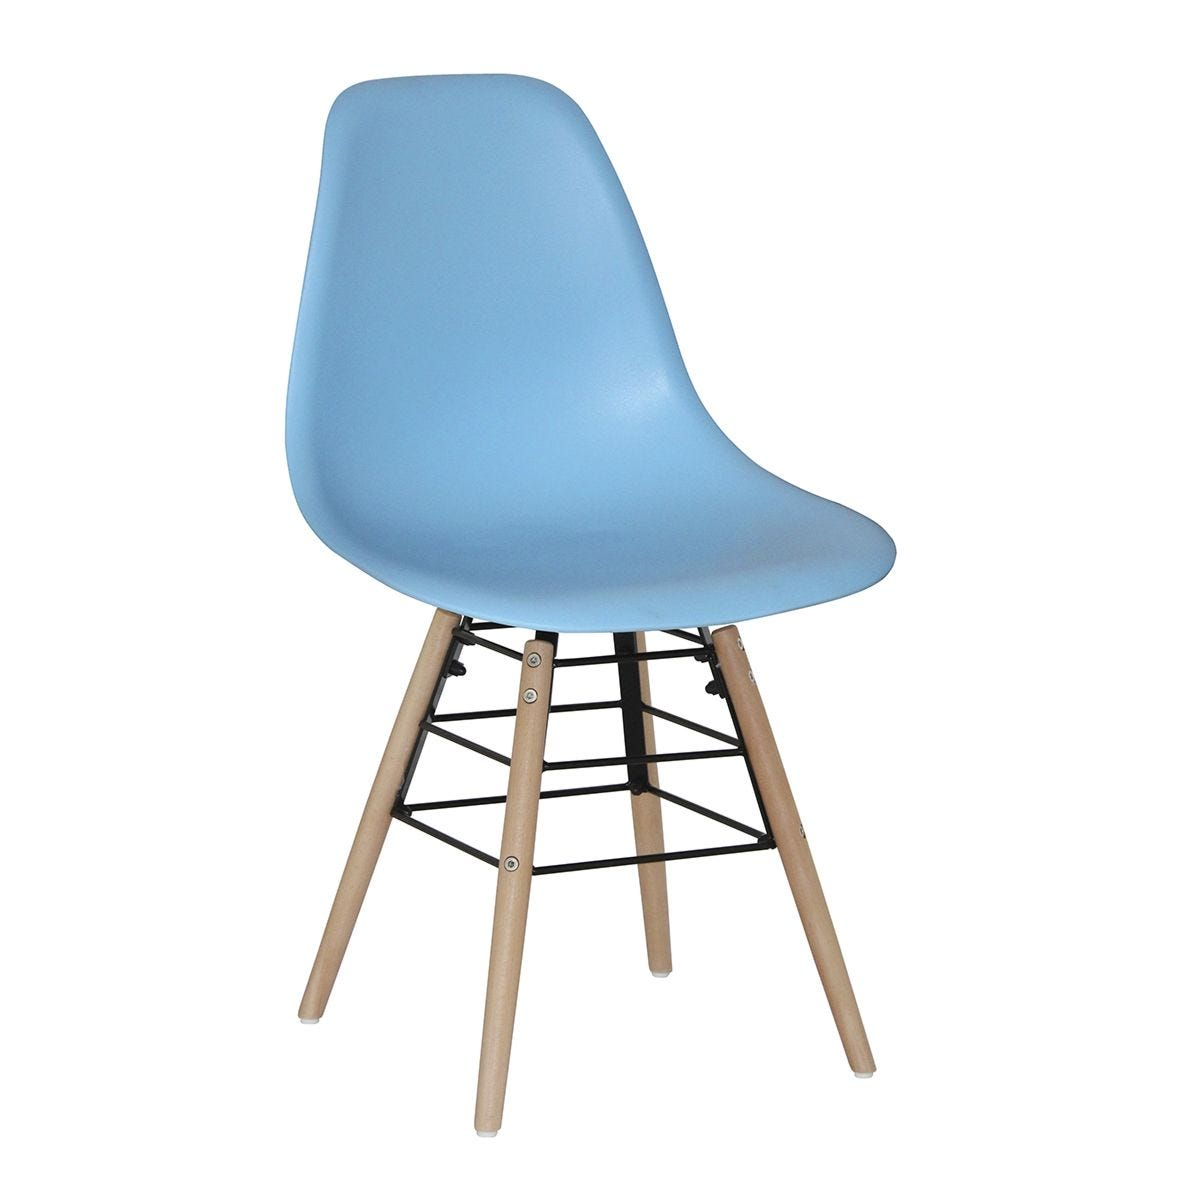 Set Of 4 Lilly Plastic Chairs with Solid Beech Legs - Light Blue